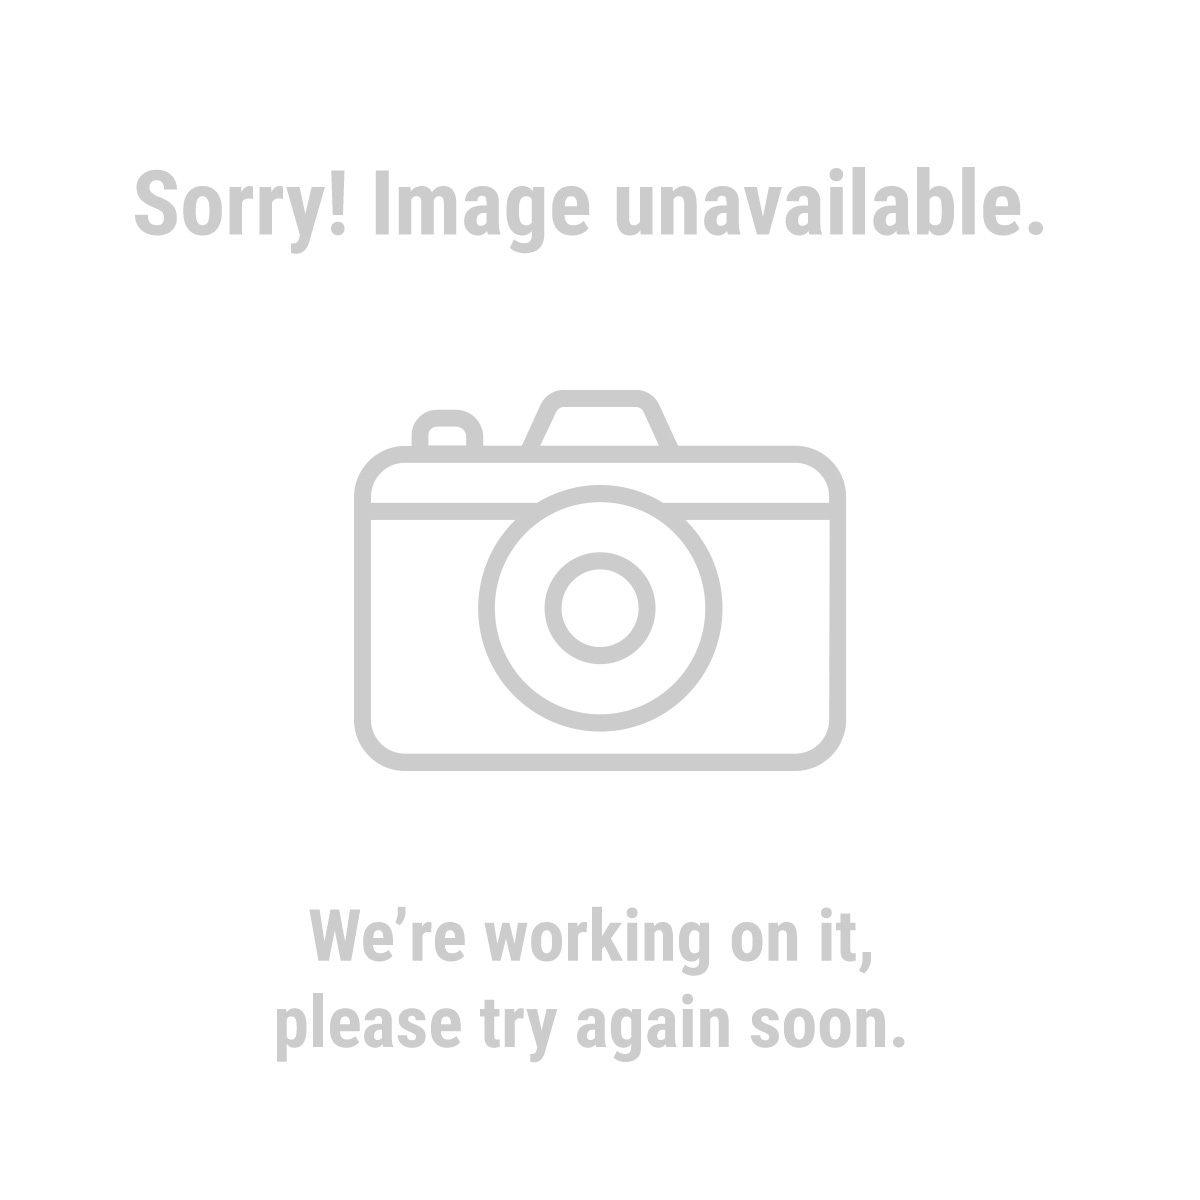 Cen-Tech® 40090 MT2 Bullnose Live Center